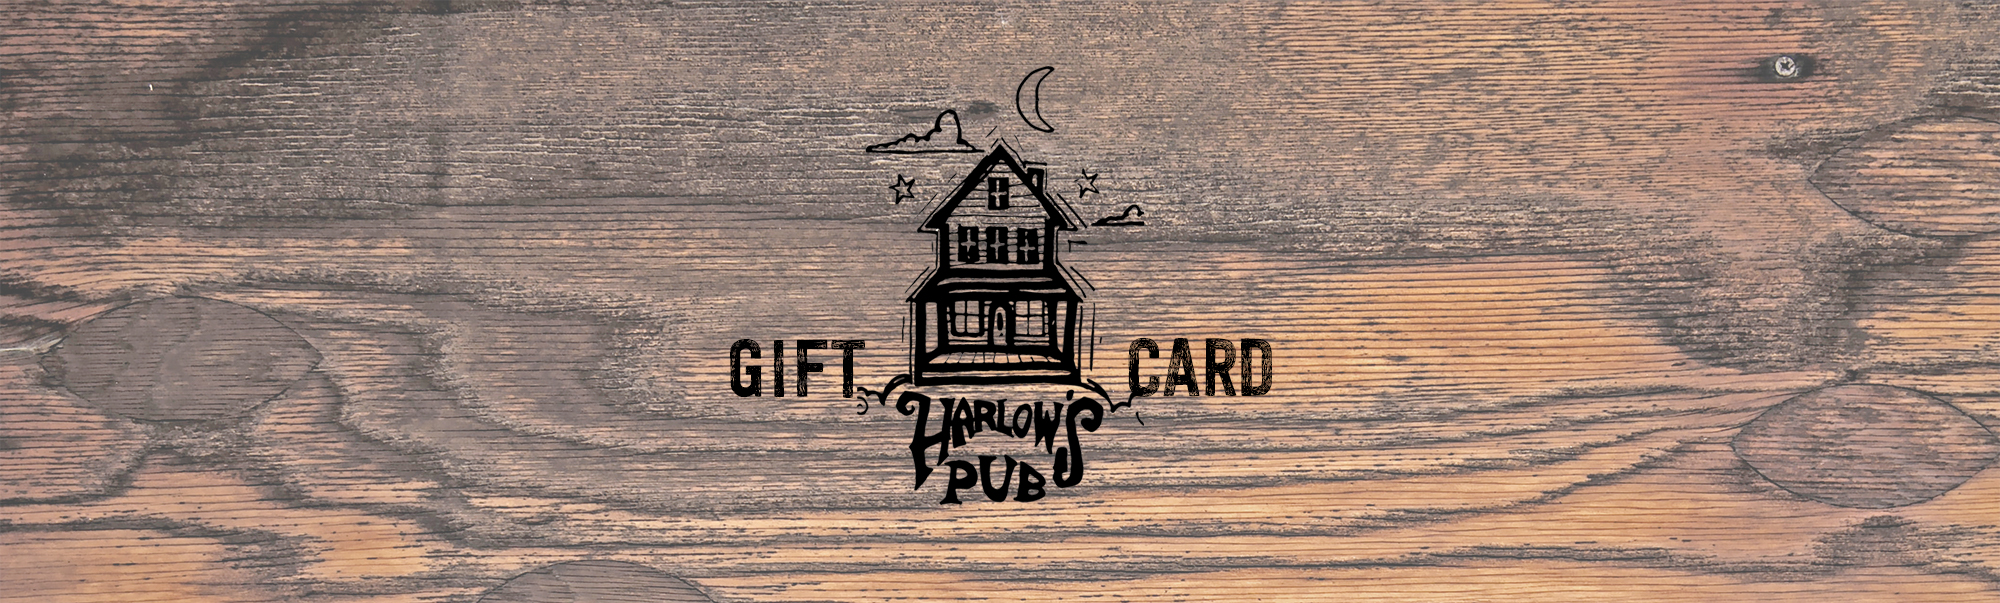 The Harlow's Pub Gift Card